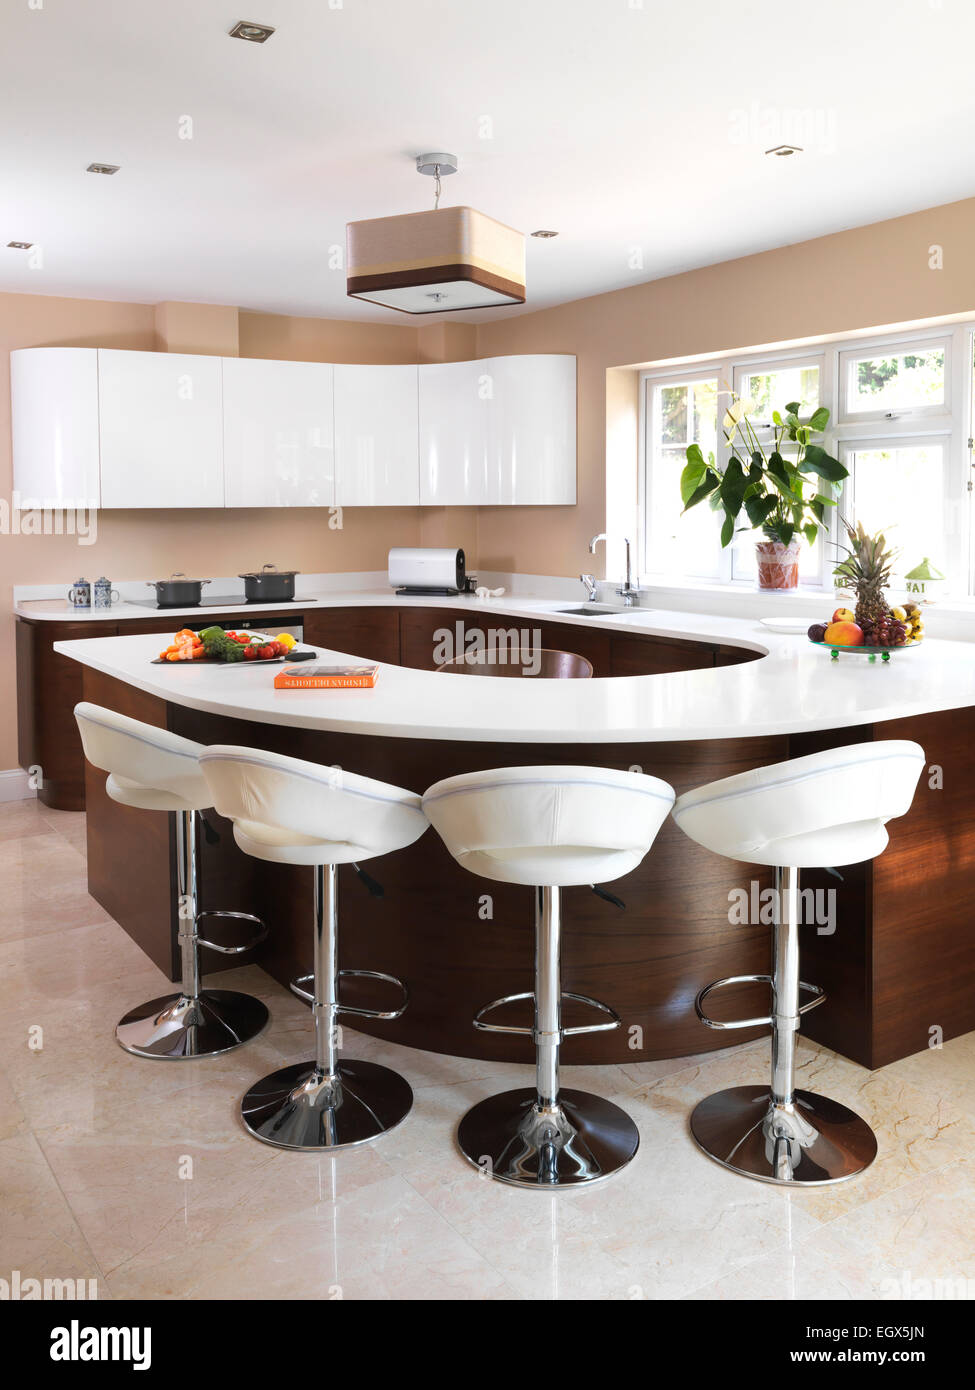 Merveilleux Bar Stools At Breakfast Bar In Modern Kitchen, UK Home